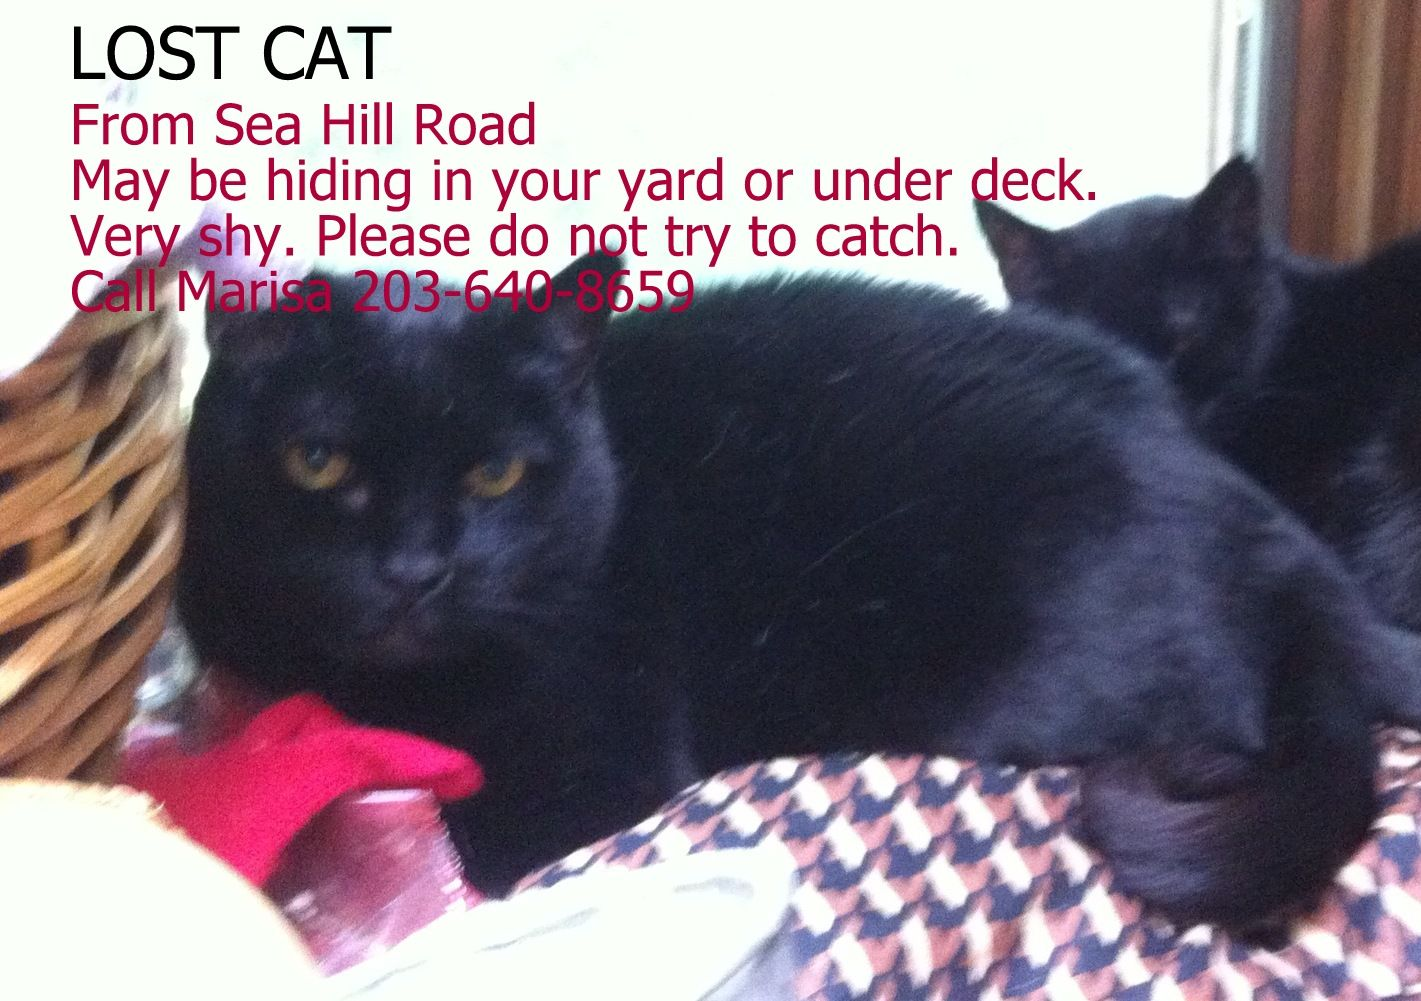 Lost Cat Connecticut Humane Society Cats Lost Cat Outdoor Cats